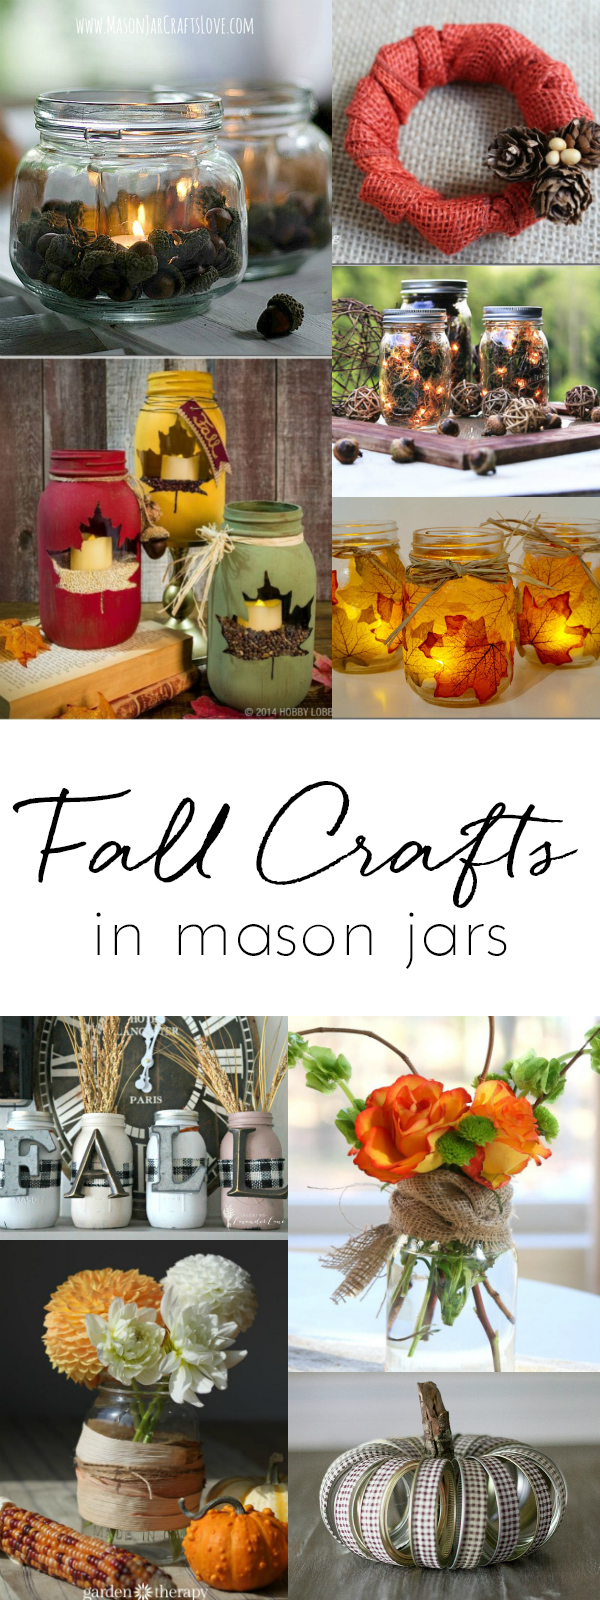 Fall Mason Jar Crafts - Craft Ideas for Fall using Mason Jars